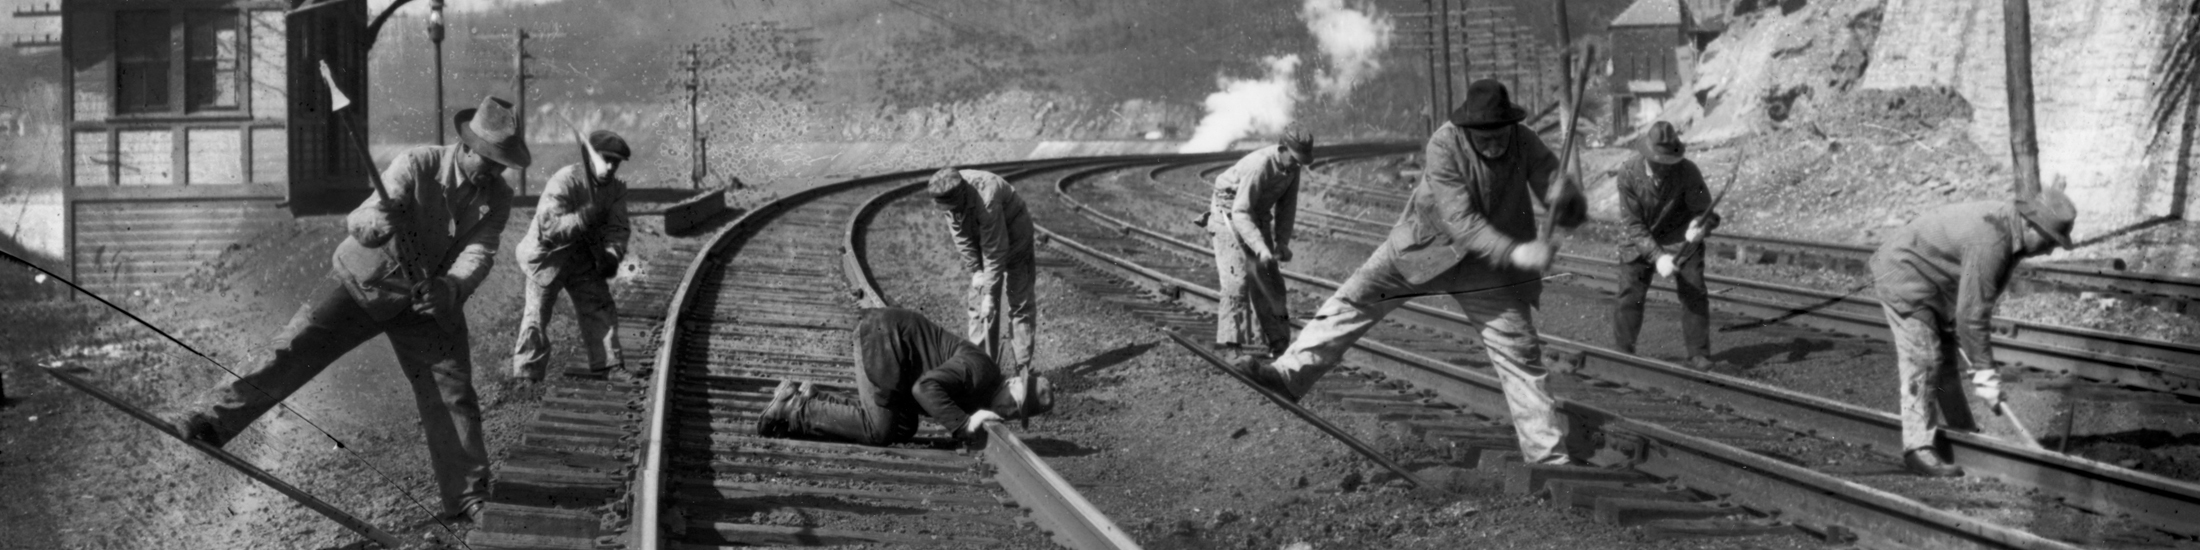 Railroad workers leveling tracks